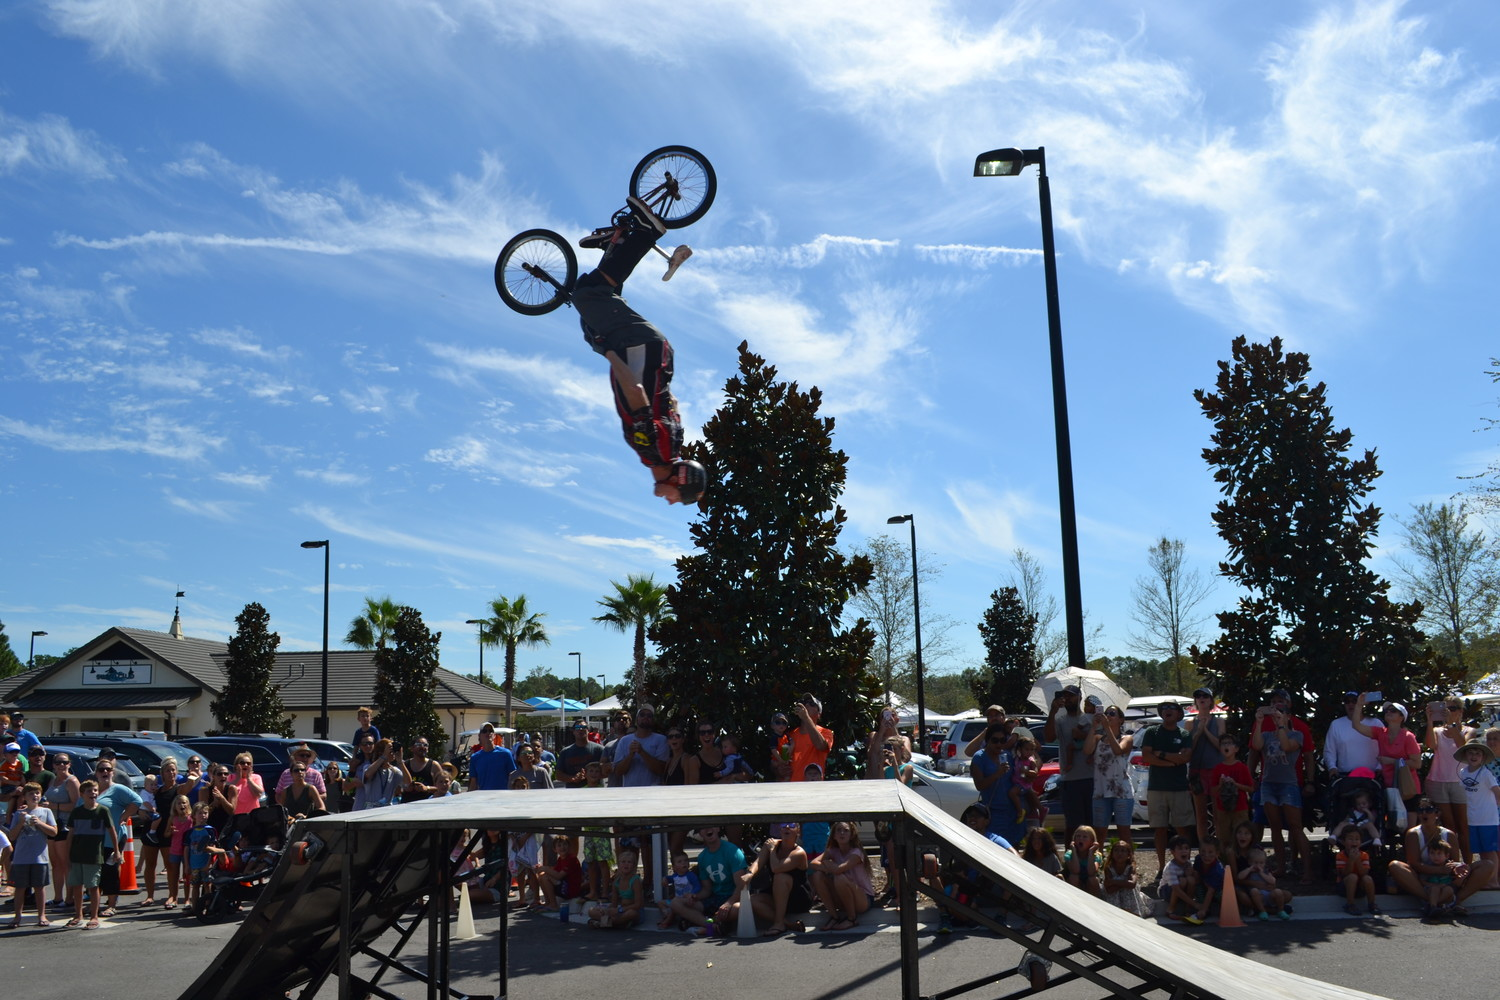 A member of the Perfection on Wheels BMX Pros Trick Team performs a stunt in front of a crowd of onlookers at the Nocatee Farmers Market last Saturday, Sept. 15. The show included half-pipe tricks and stunts, crowd participation and more. Per the usual, the Farmers Market also included over 70 local vendors offering items such as organic produce, herbs, spices, unique foods, crafts and jewelry.